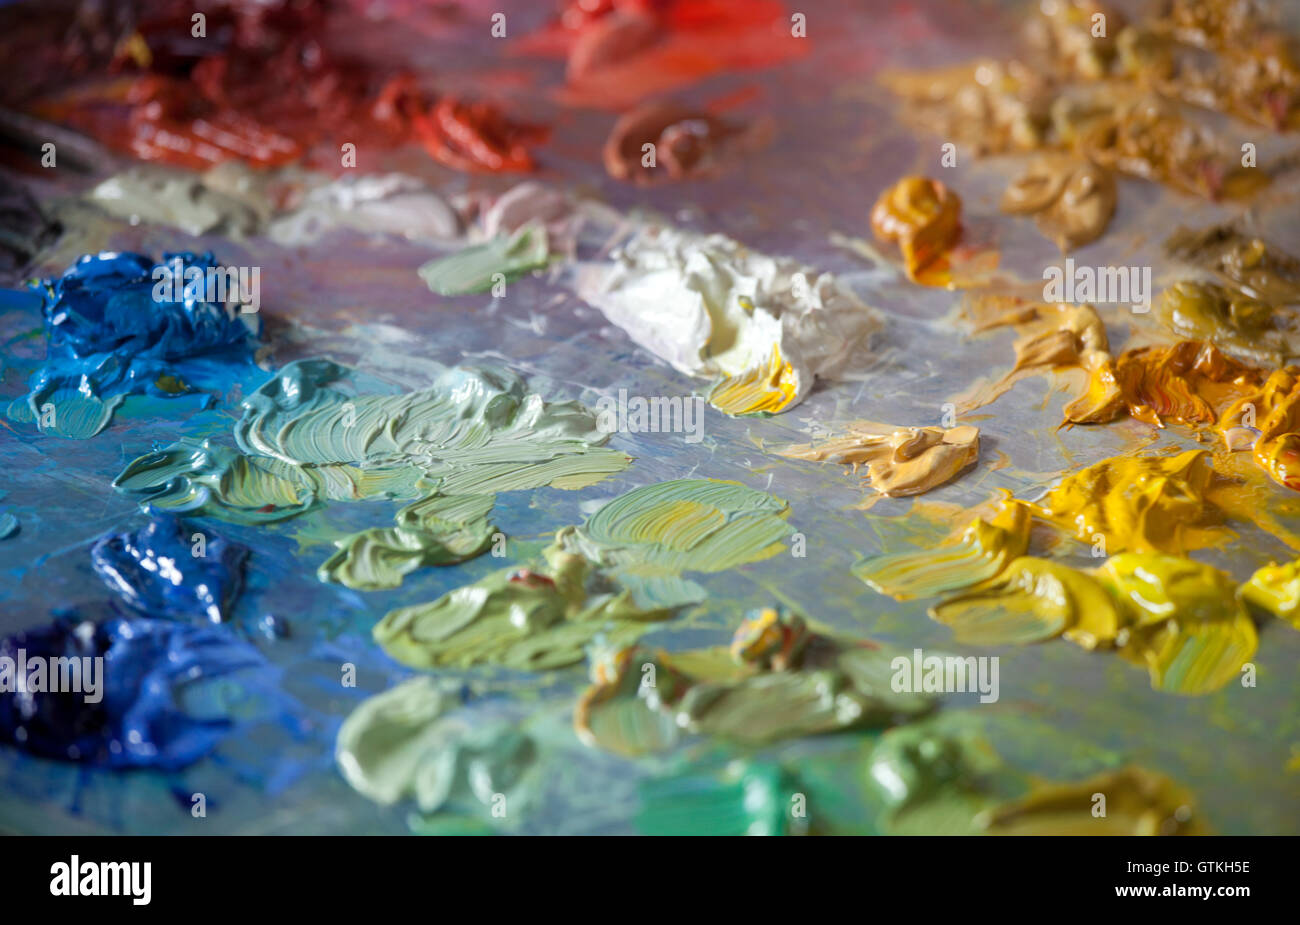 Close-up of oil paint on a painter's palette - Stock Image